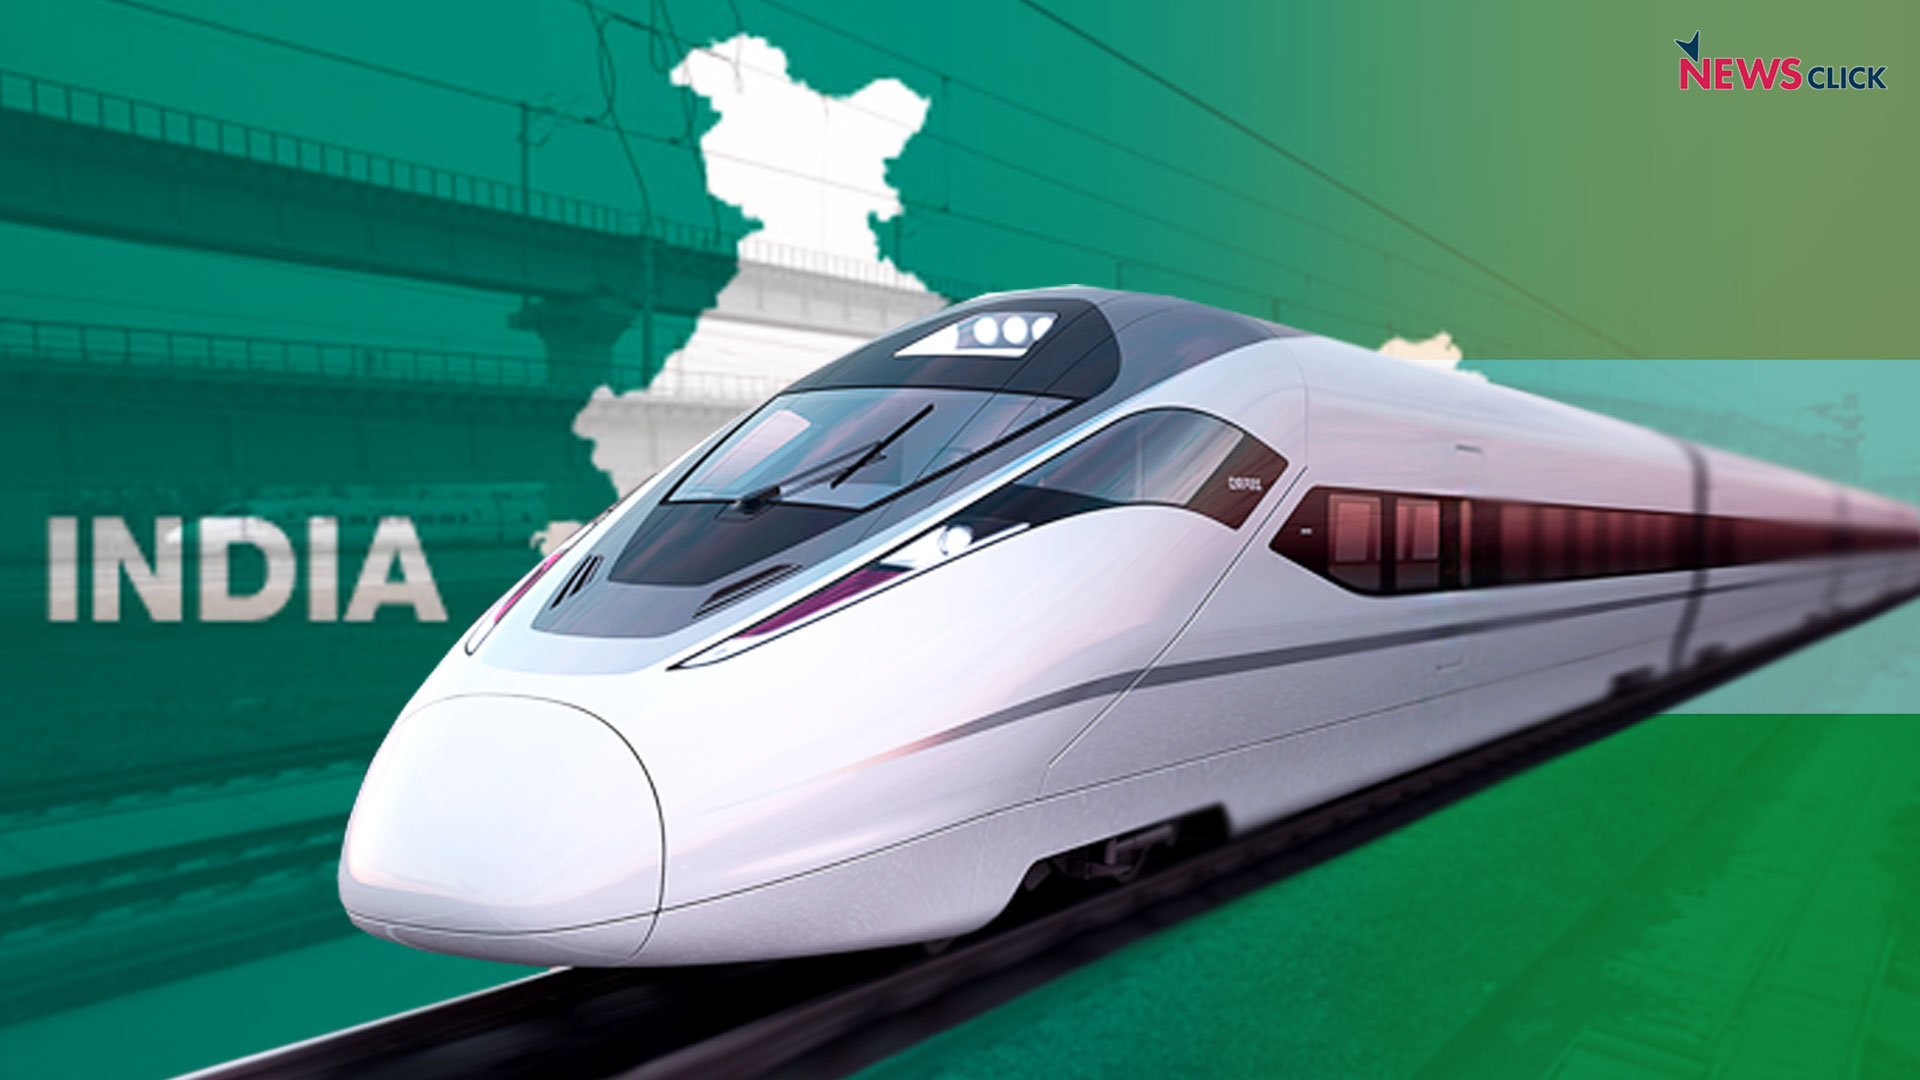 bullet train Bullet train guide includes history of the japanese bullet train, bullet train speeds, bullet train pictures, bullet train video and bullet train specifications.